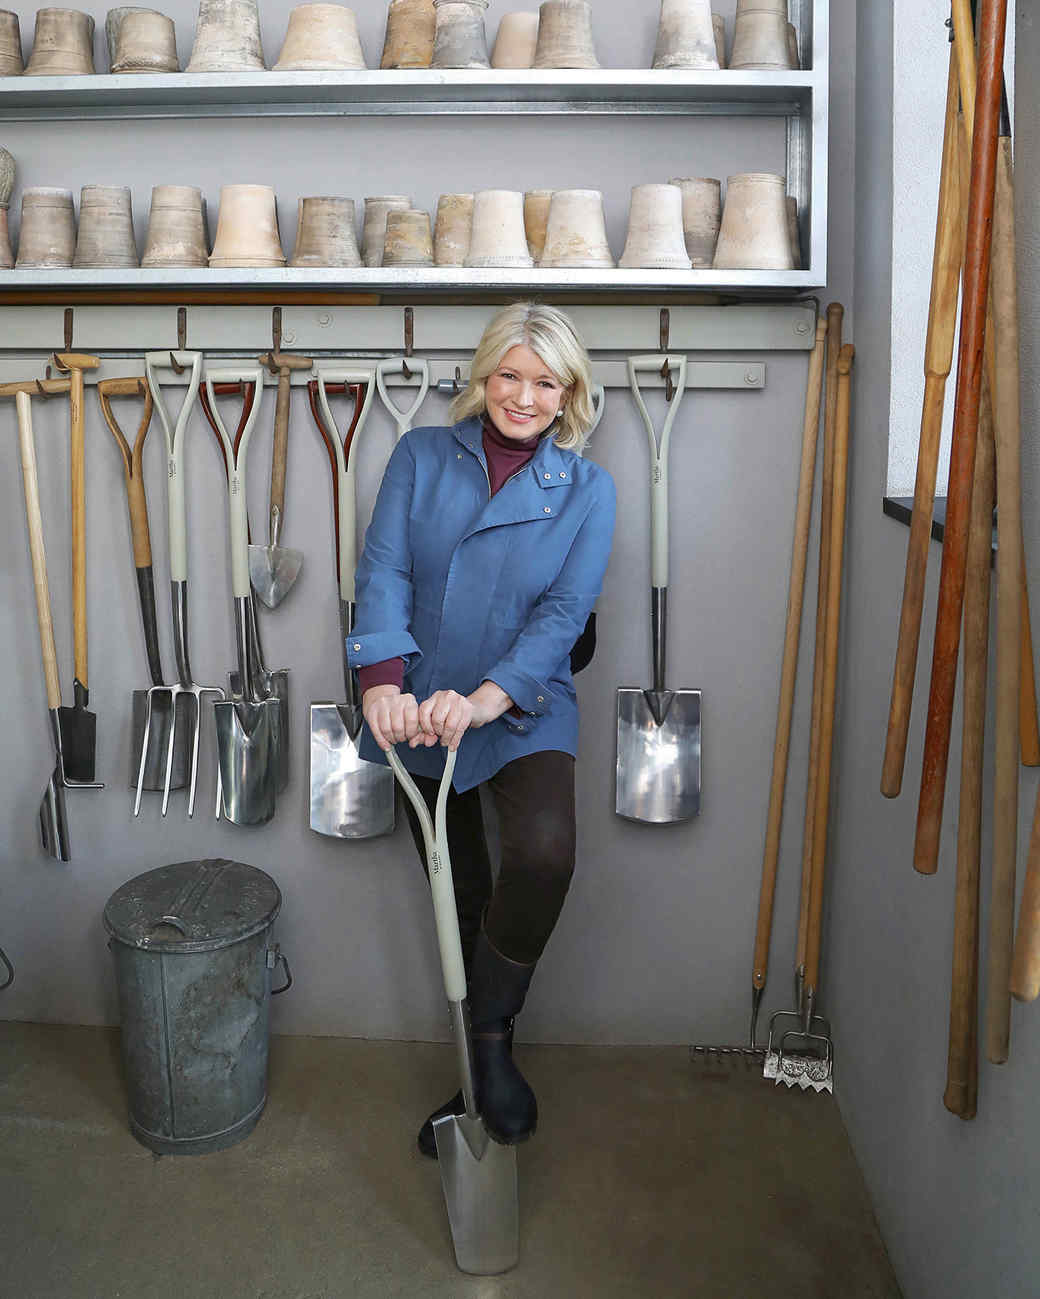 martha holding amazon garden shovel in tool shed